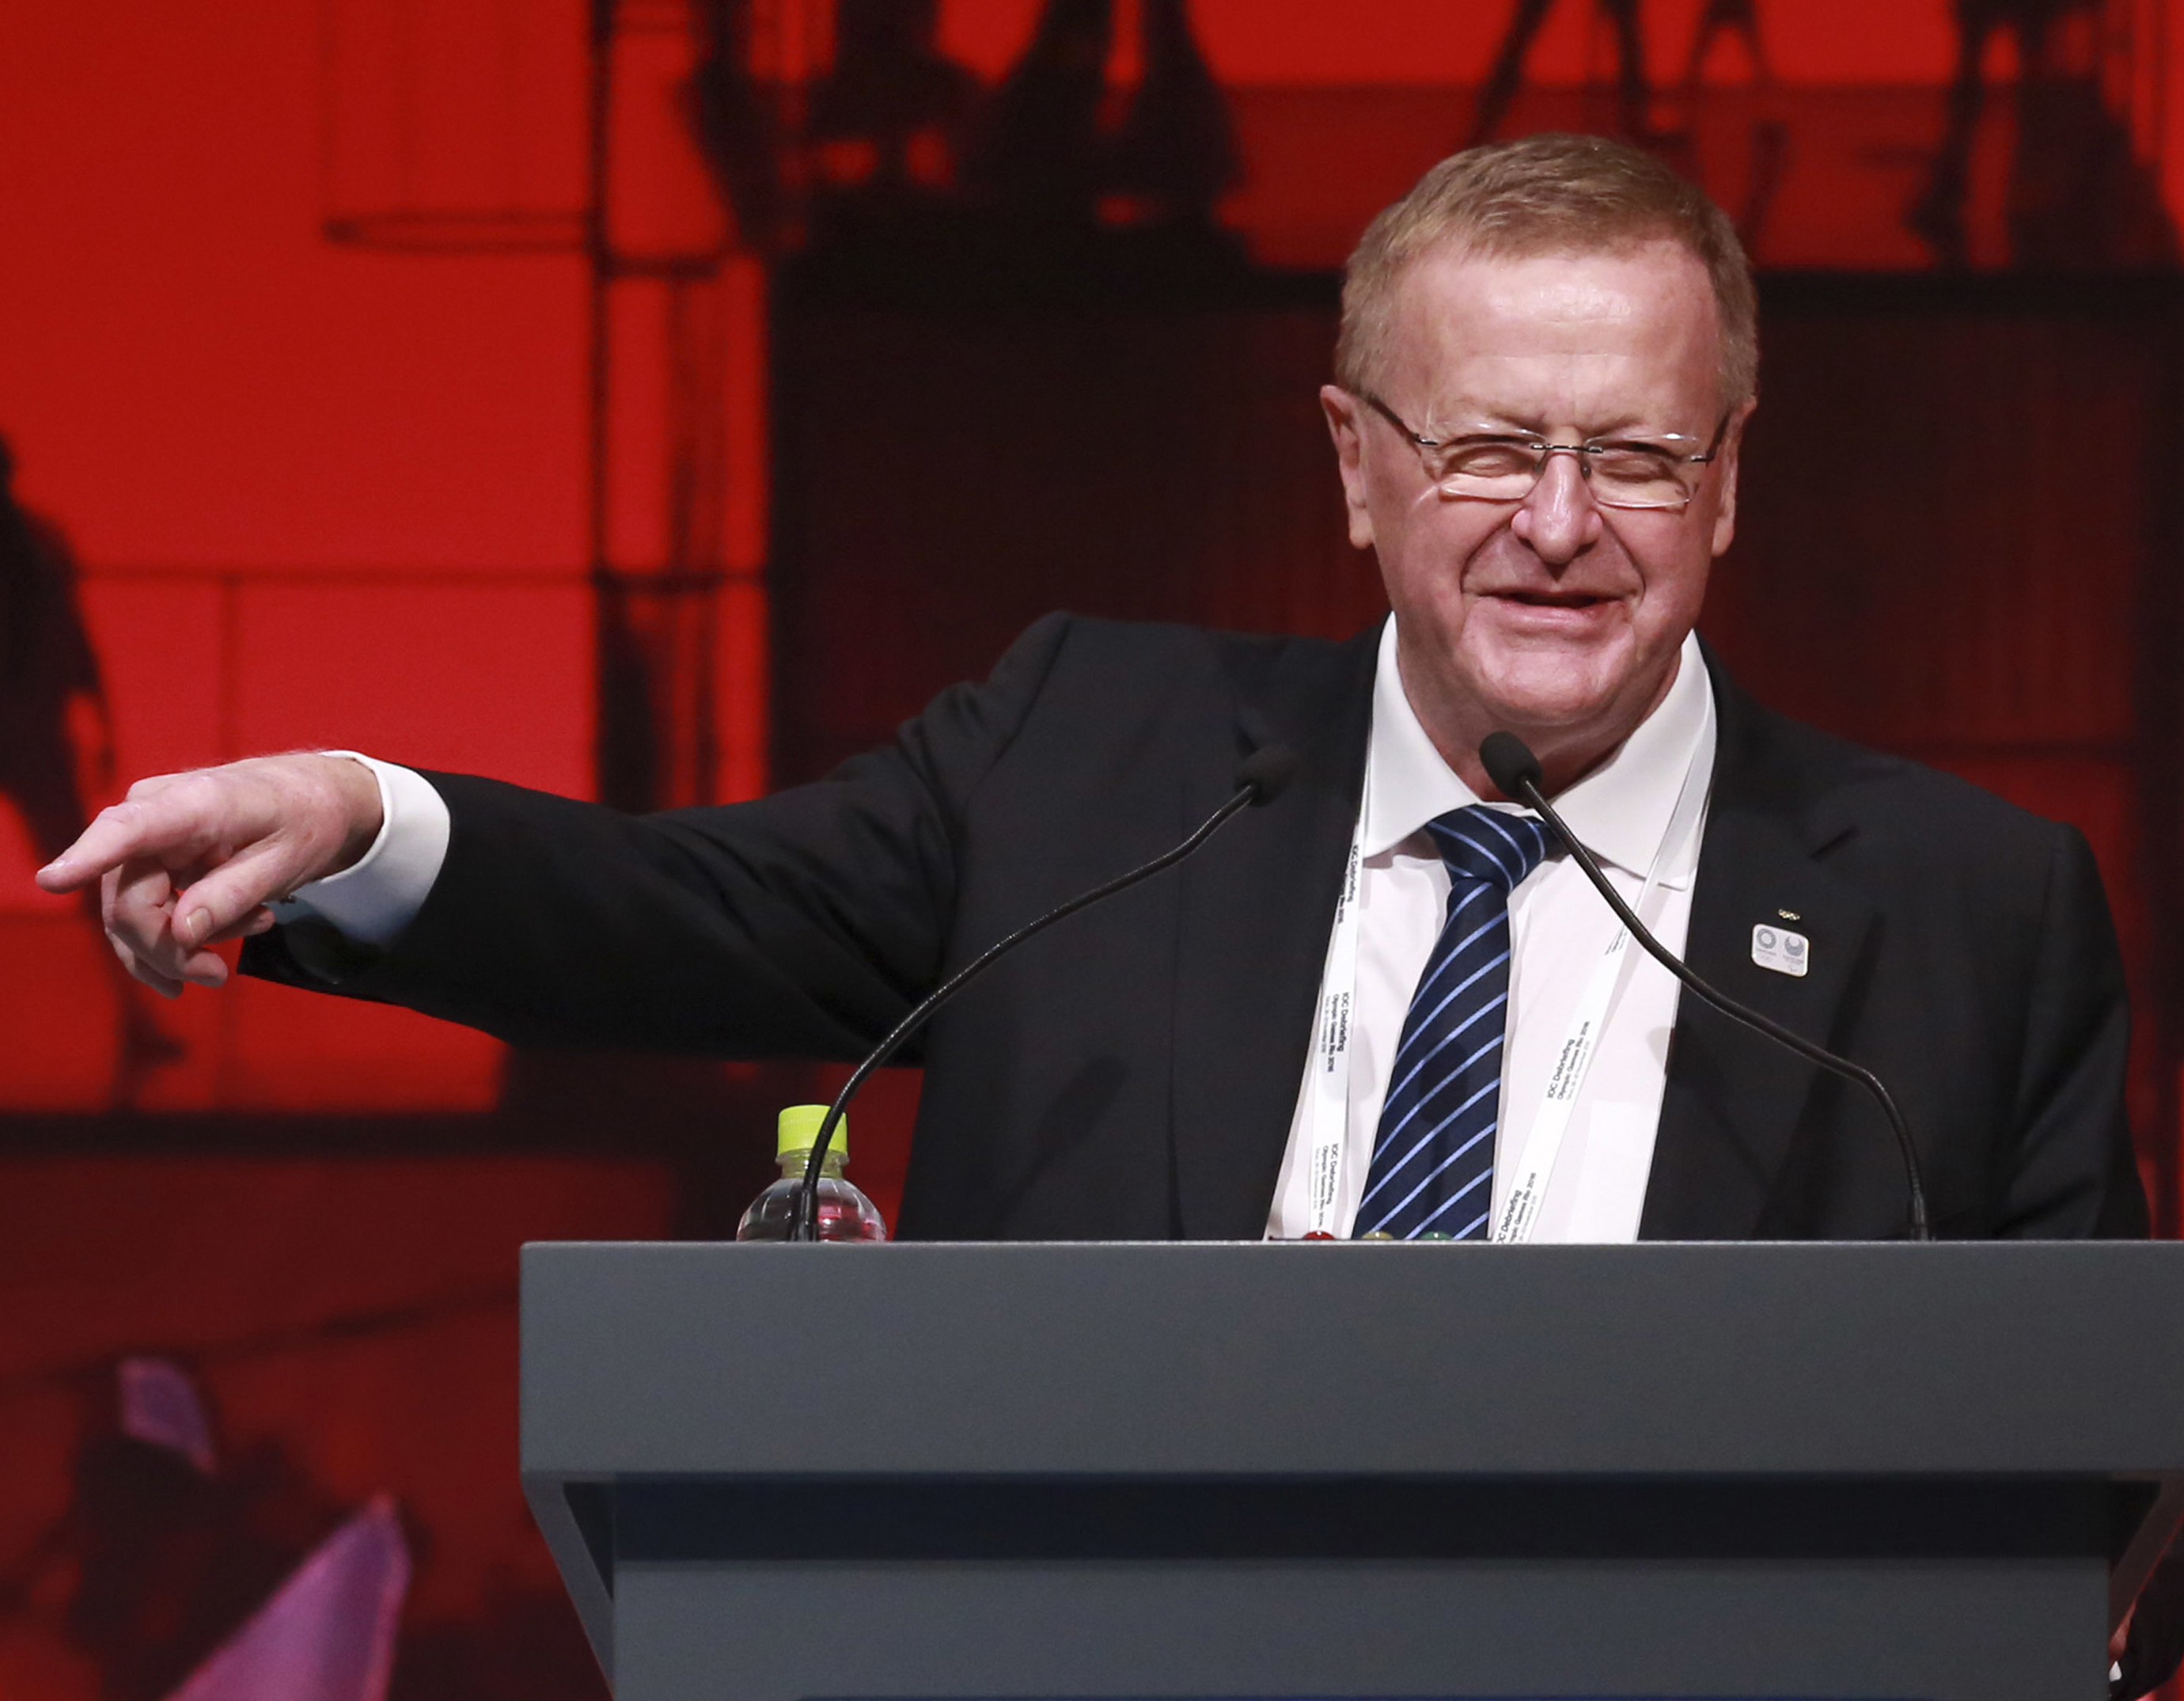 FILE - In this Nov. 30, 2016, file photo, IOC Vice President John Coates delivers a speech during the closing plenary session of the IOC Debriefing of the Olympic Games Rio 2016, in Tokyo. An increasingly bitter Olympic election in Australia has intensifi